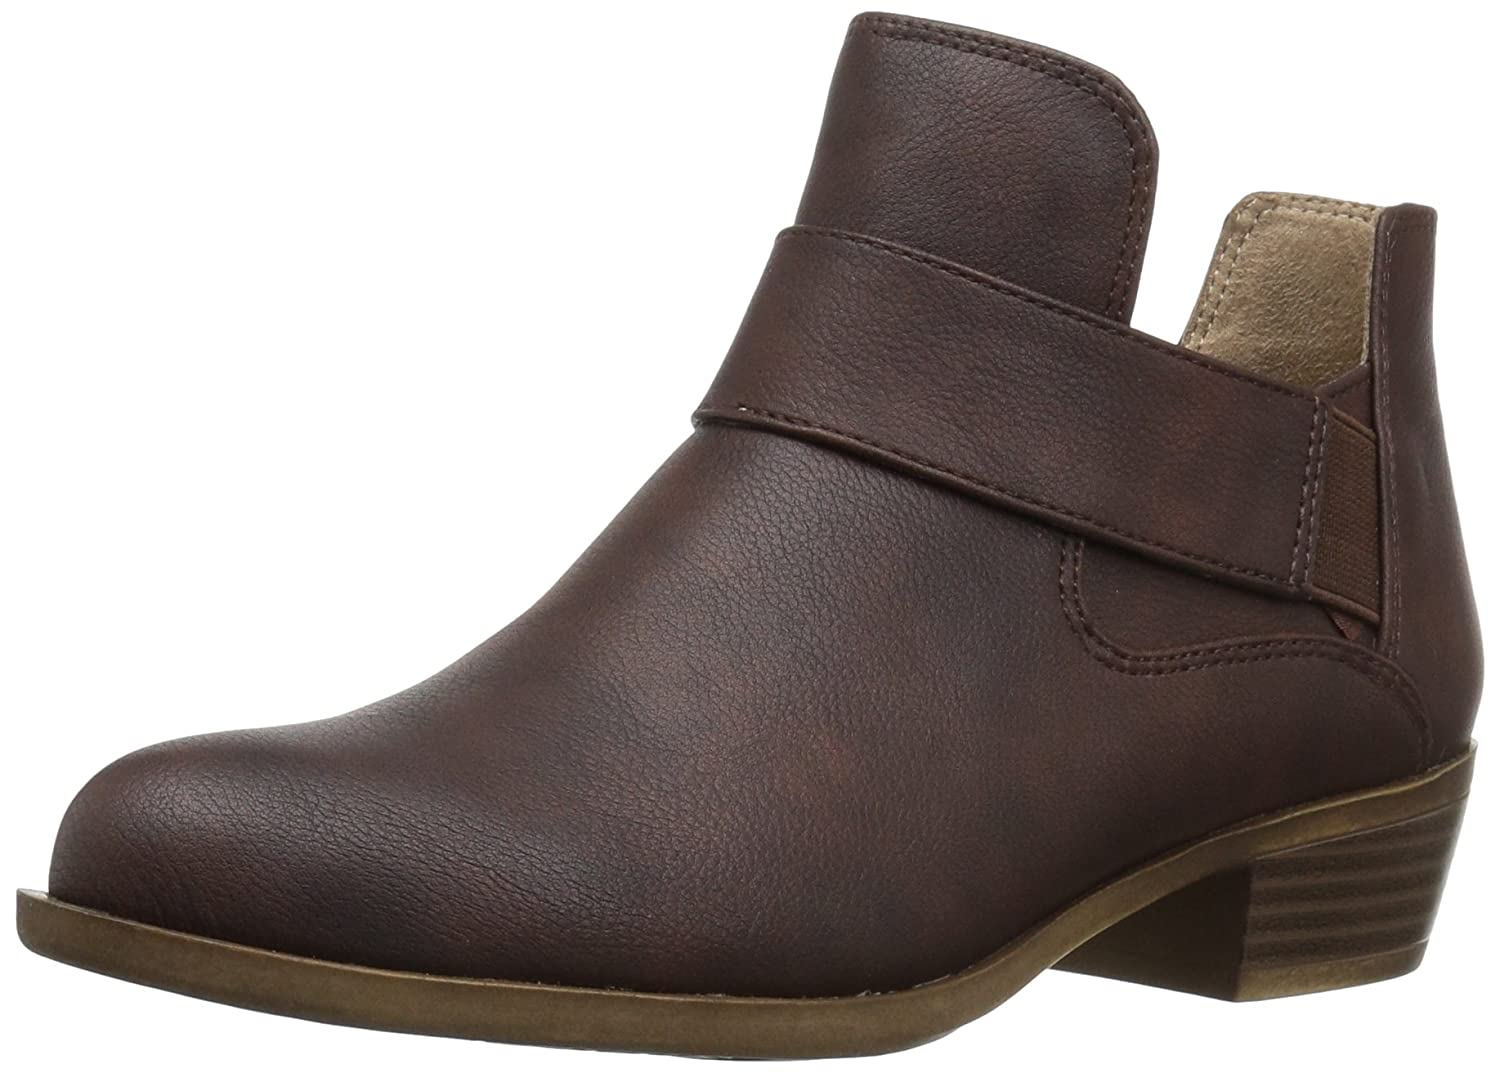 LifeStride Women's Able Ankle Bootie B06Y2KNX9K 8 W US|Brown